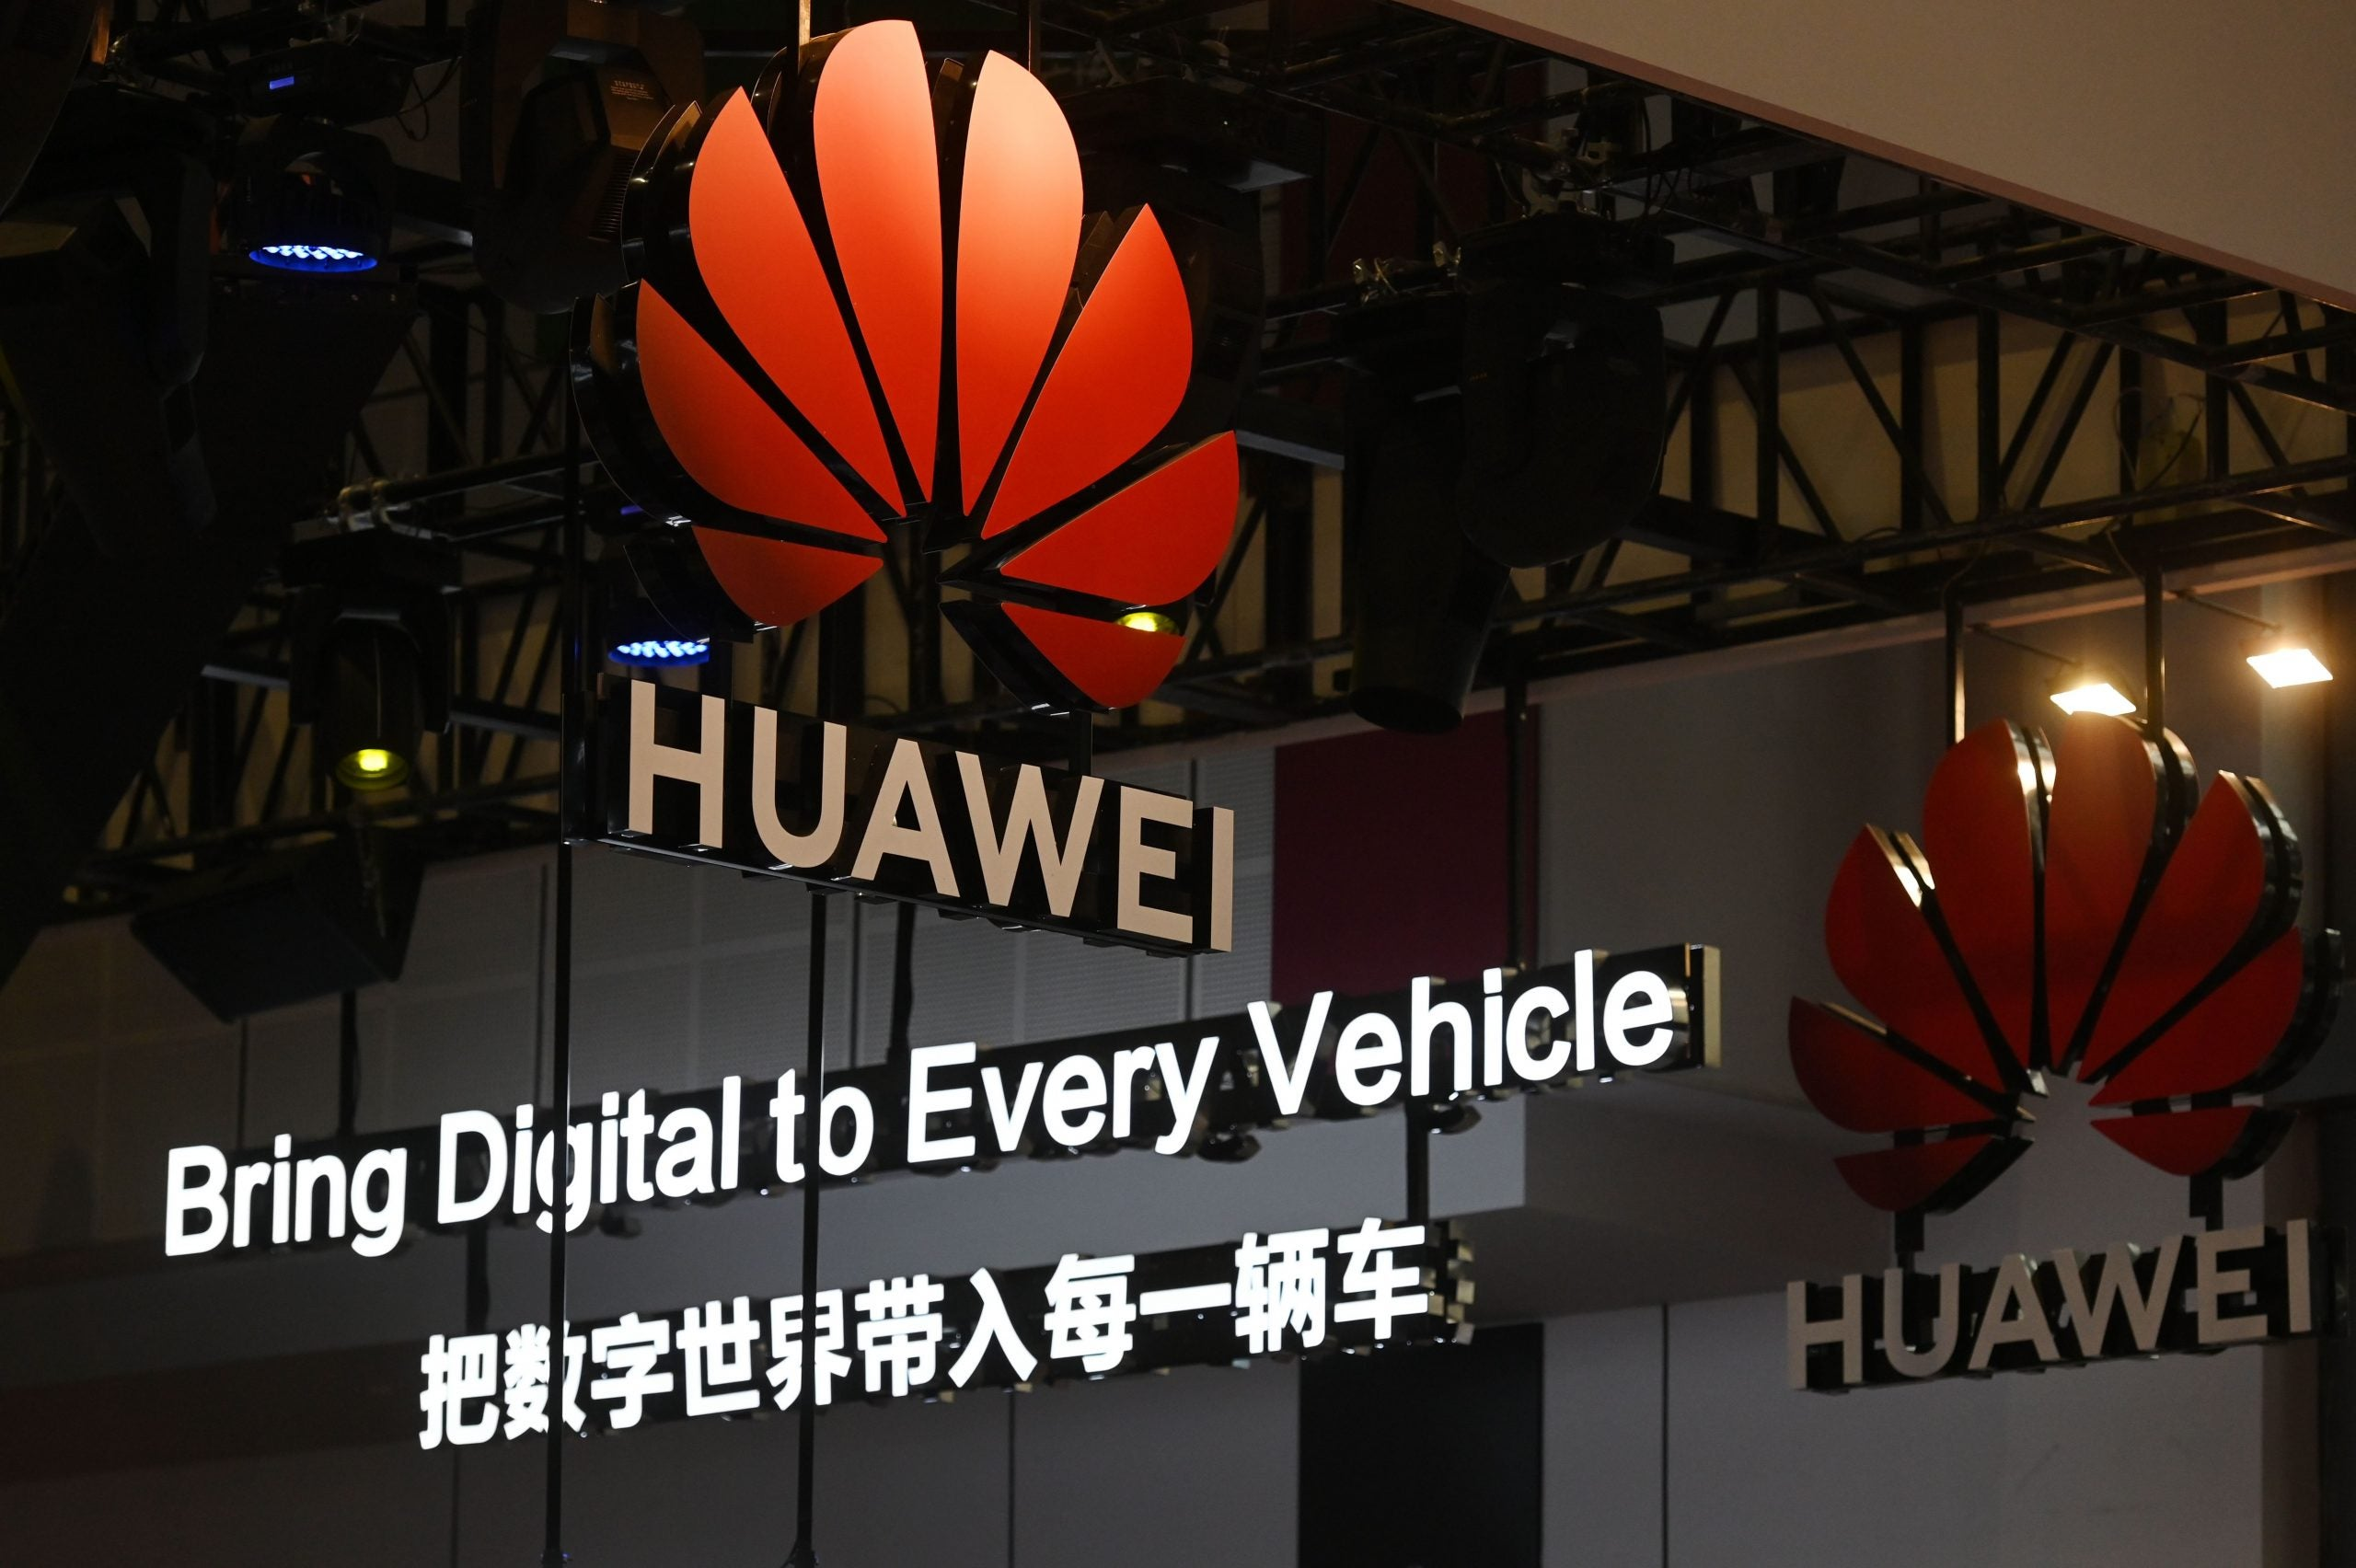 In Brexit Britain, Theresa May could never have afforded to ban Huawei